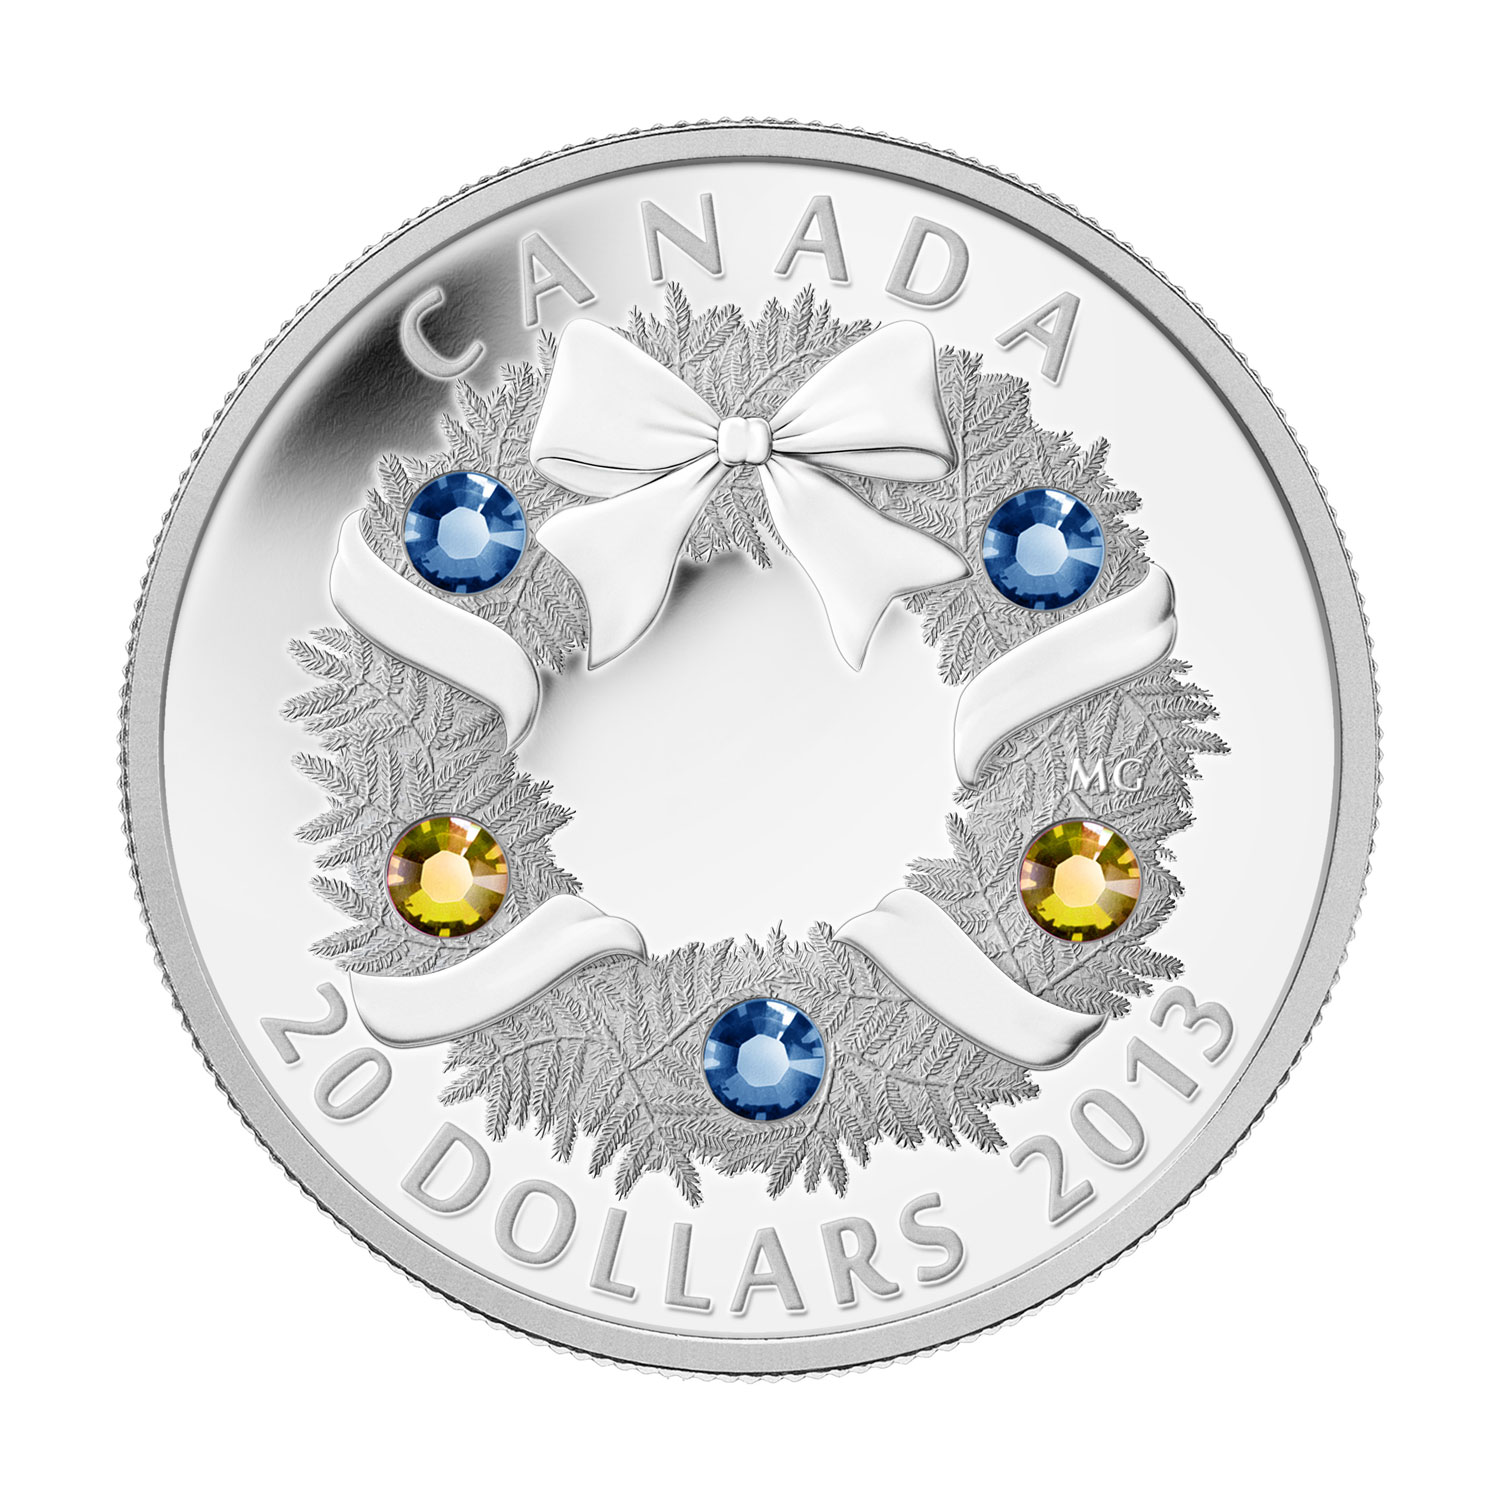 2013 Canada 1 oz Silver $20 Swarovski Crystal Holiday Wreath